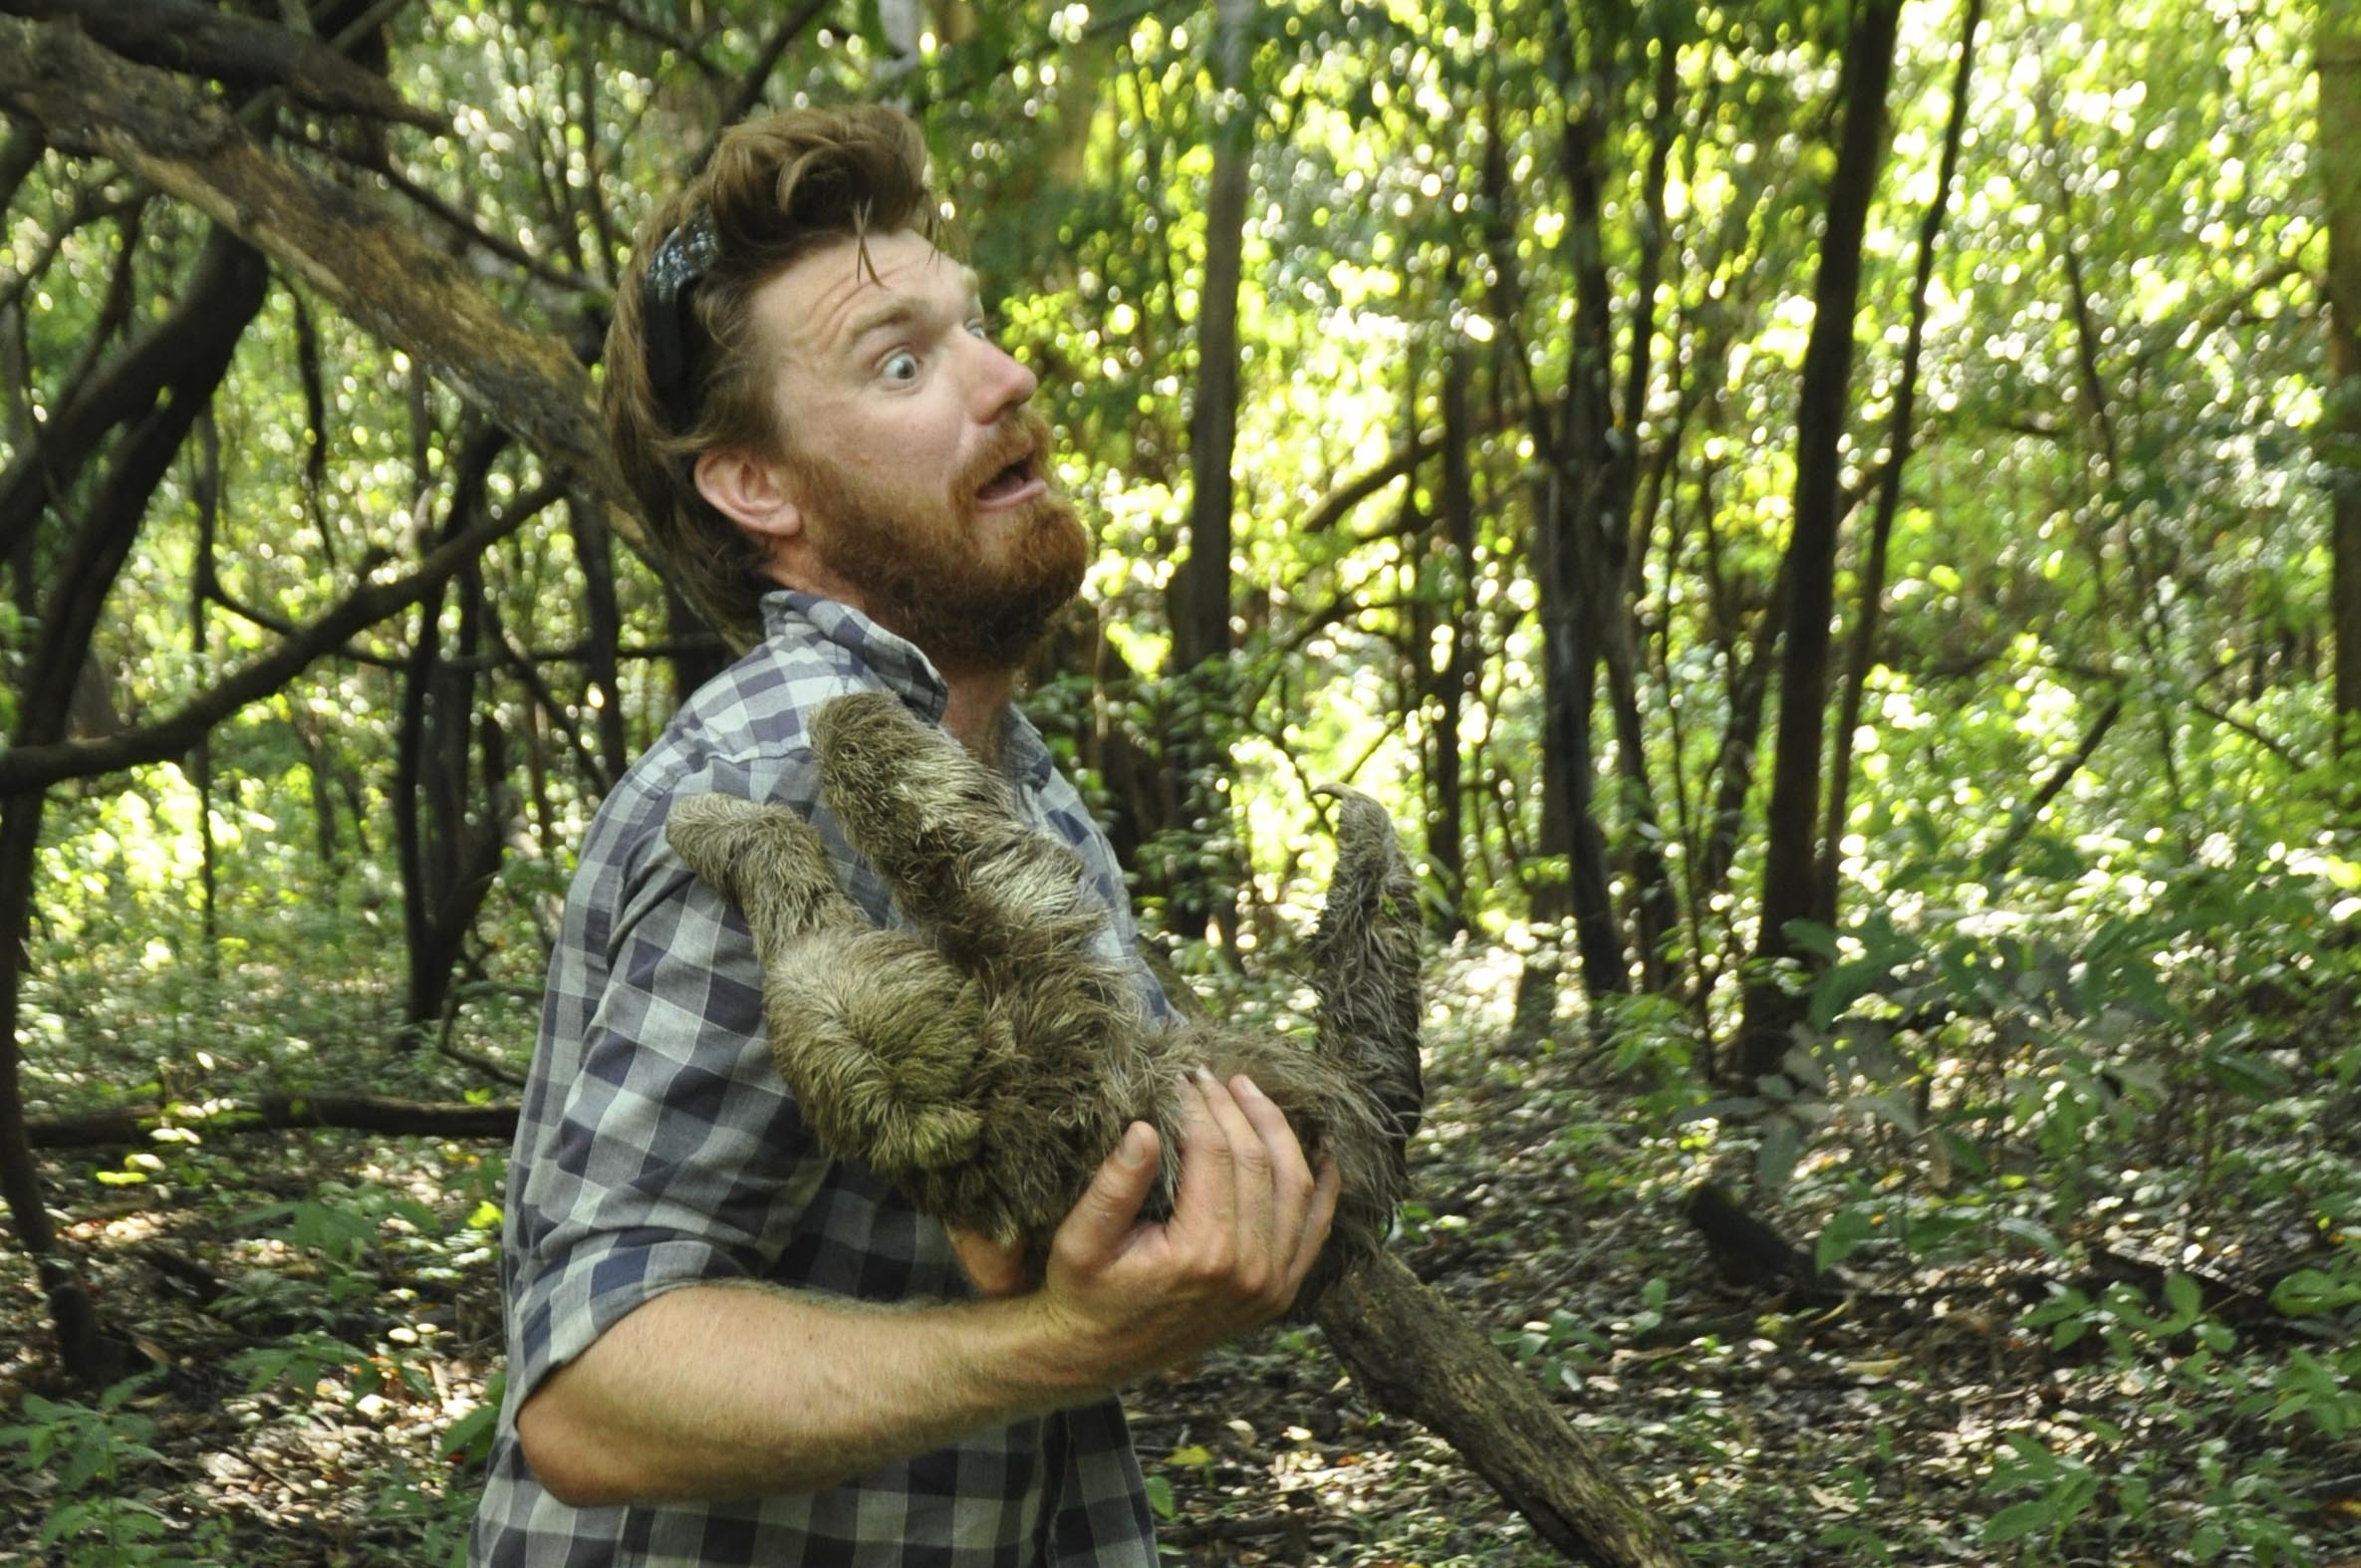 Being attacked by a sloth – not magical!